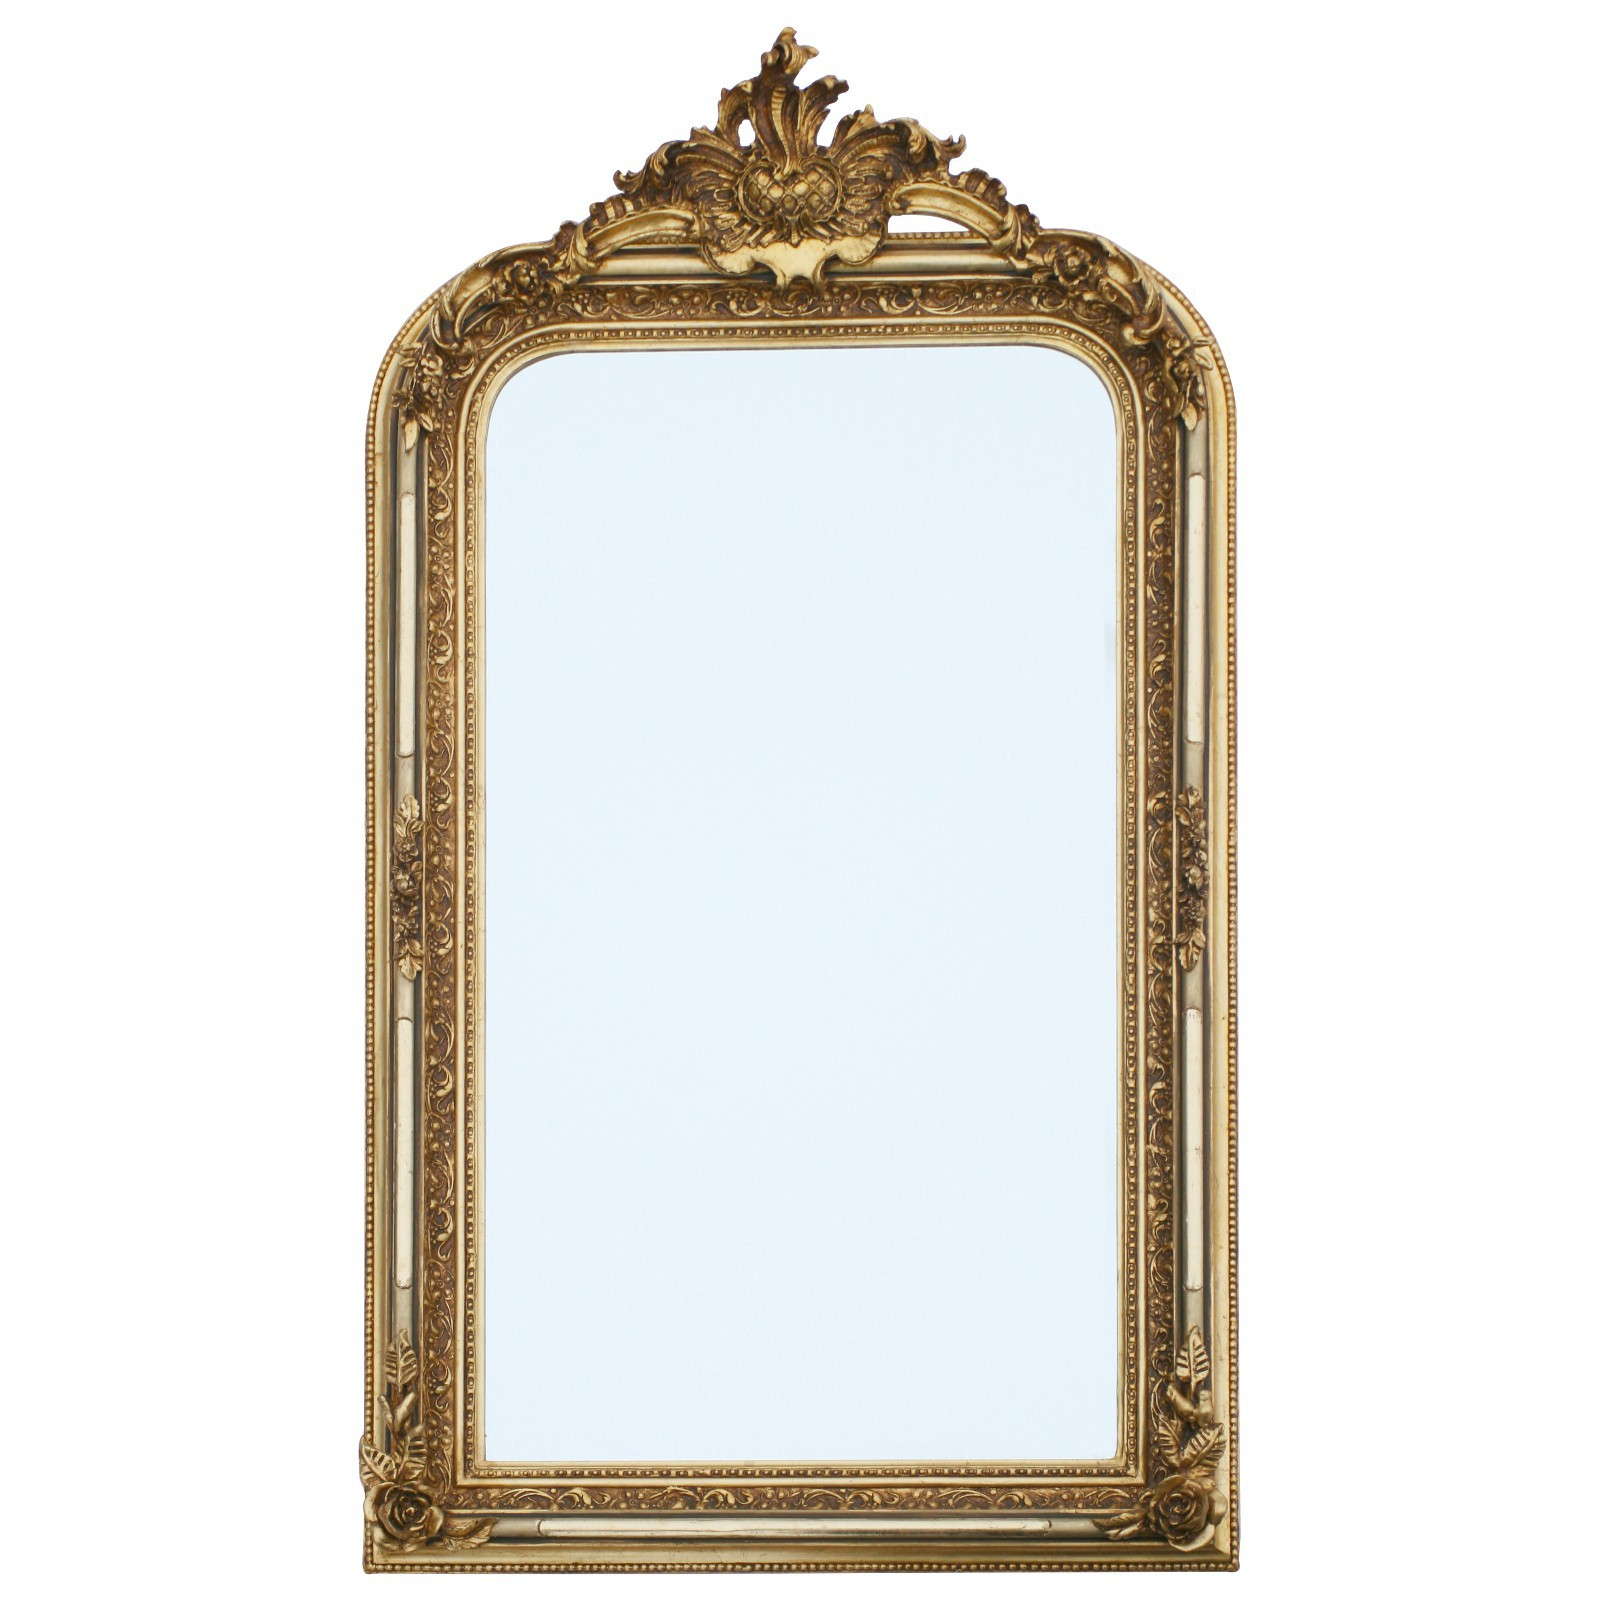 Wall mirror large ostentatious luxury baroque mirror with bevelled ...